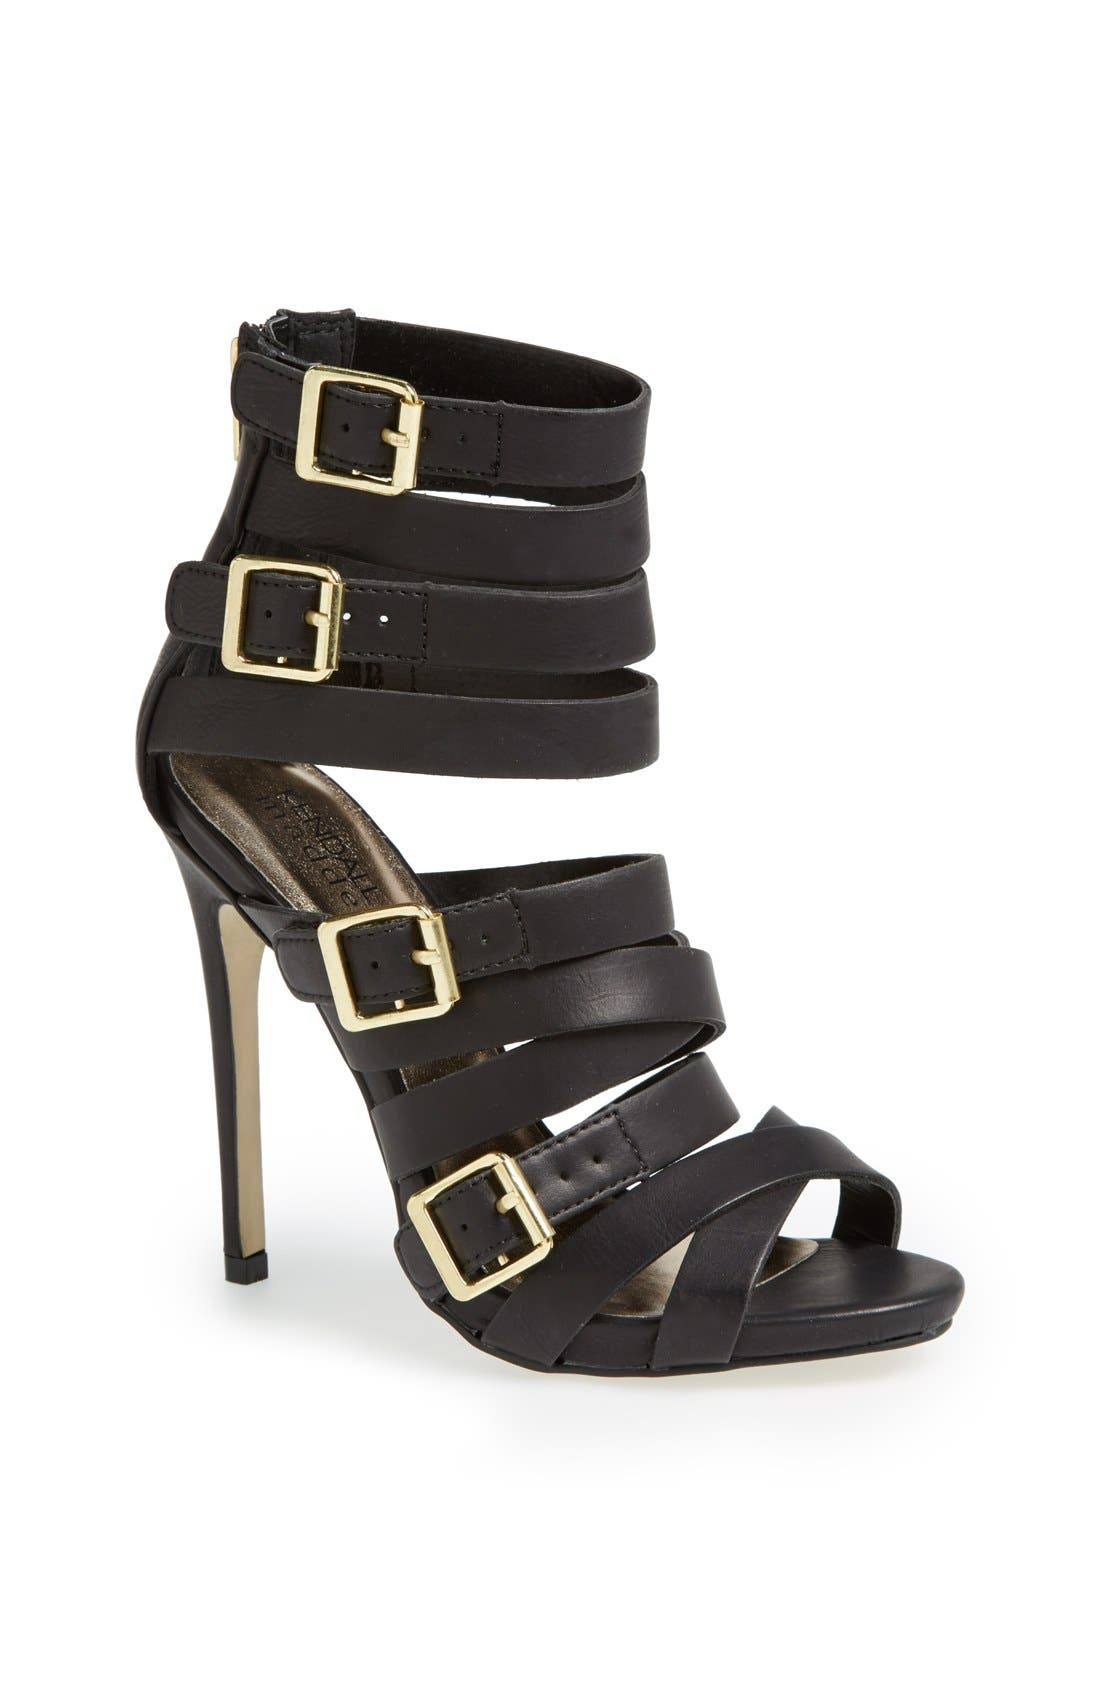 Alternate Image 1 Selected - KENDALL + KYLIE Madden Girl 'Milah' Sandal